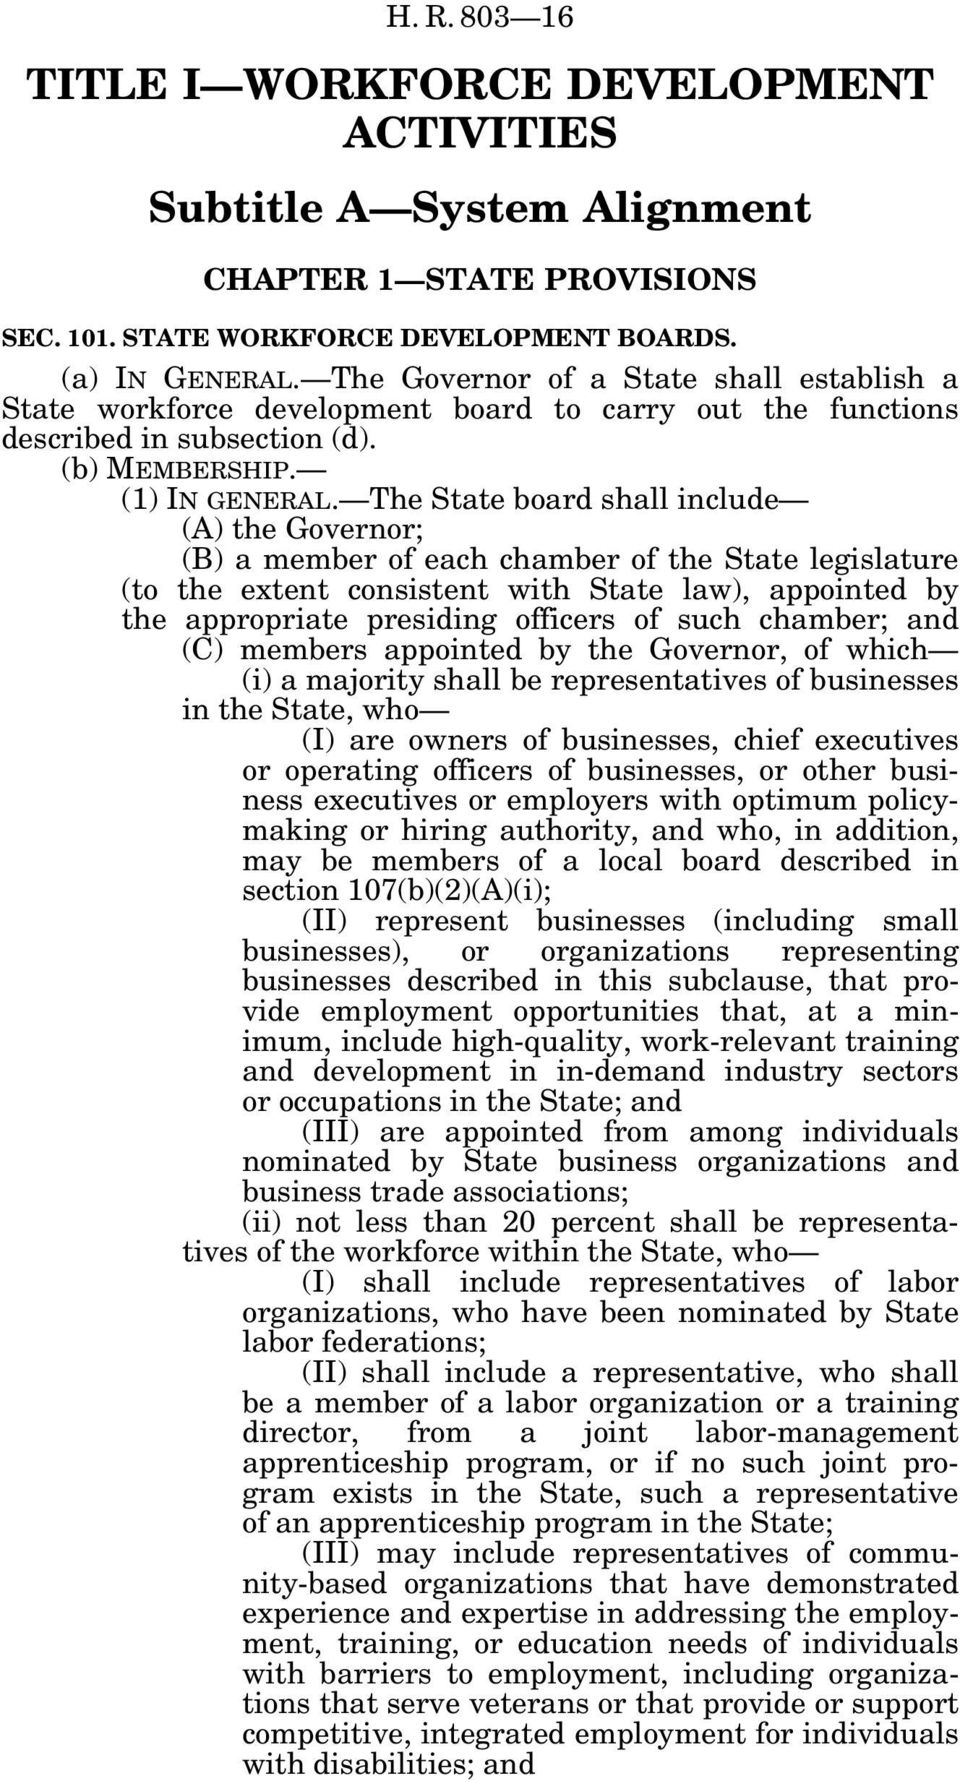 The State board shall include (A) the Governor; (B) a member of each chamber of the State legislature (to the extent consistent with State law), appointed by the appropriate presiding officers of